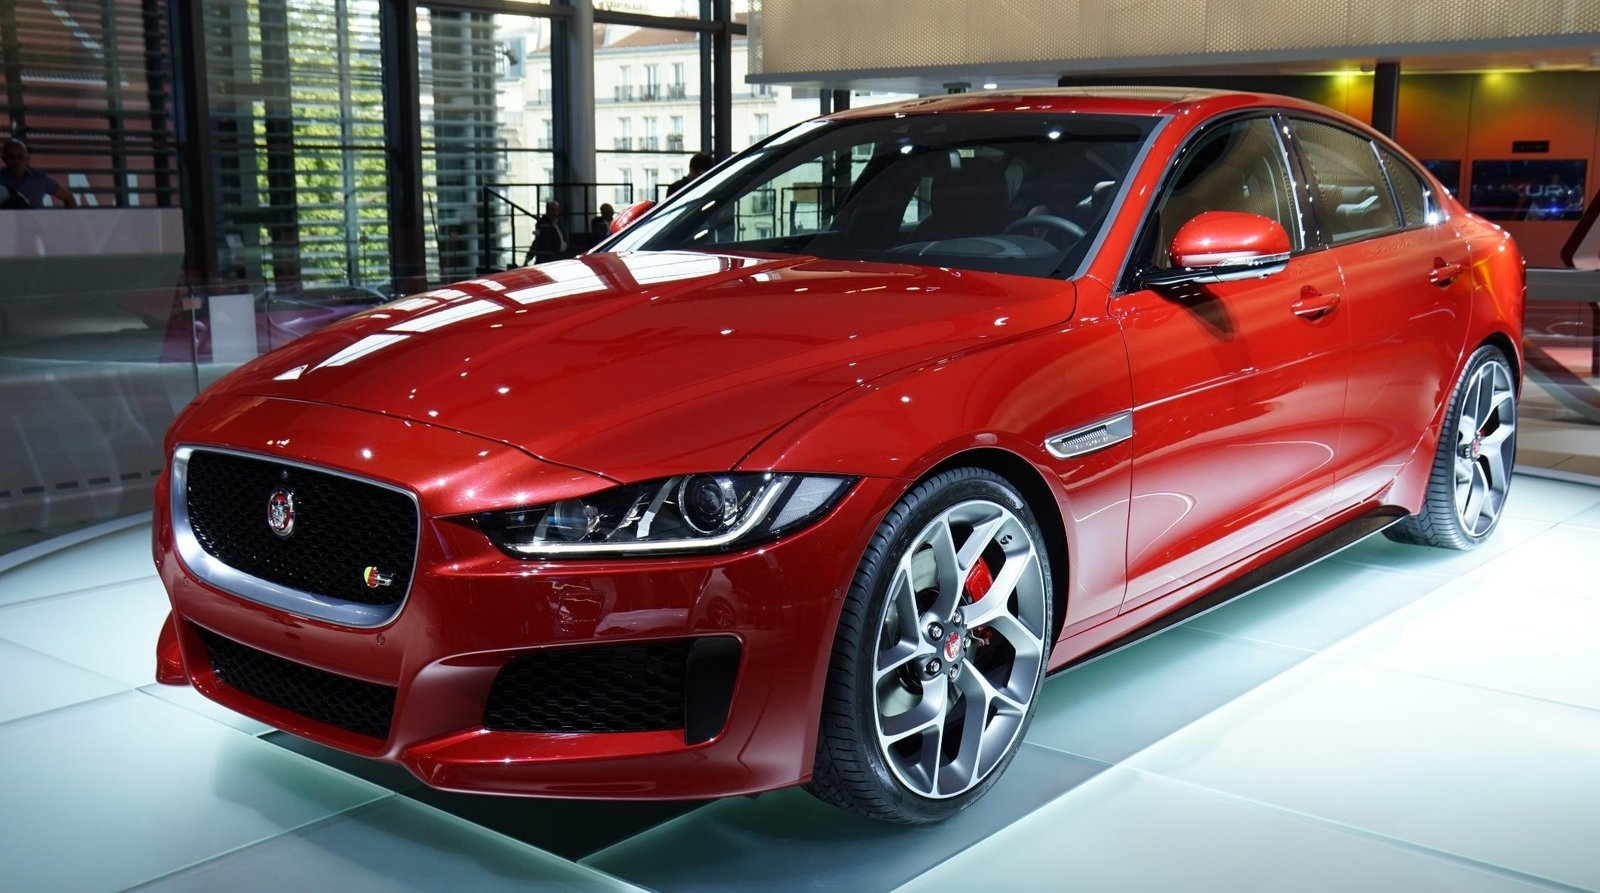 jaguar xe reviews specs prices photos and videos top speed. Black Bedroom Furniture Sets. Home Design Ideas